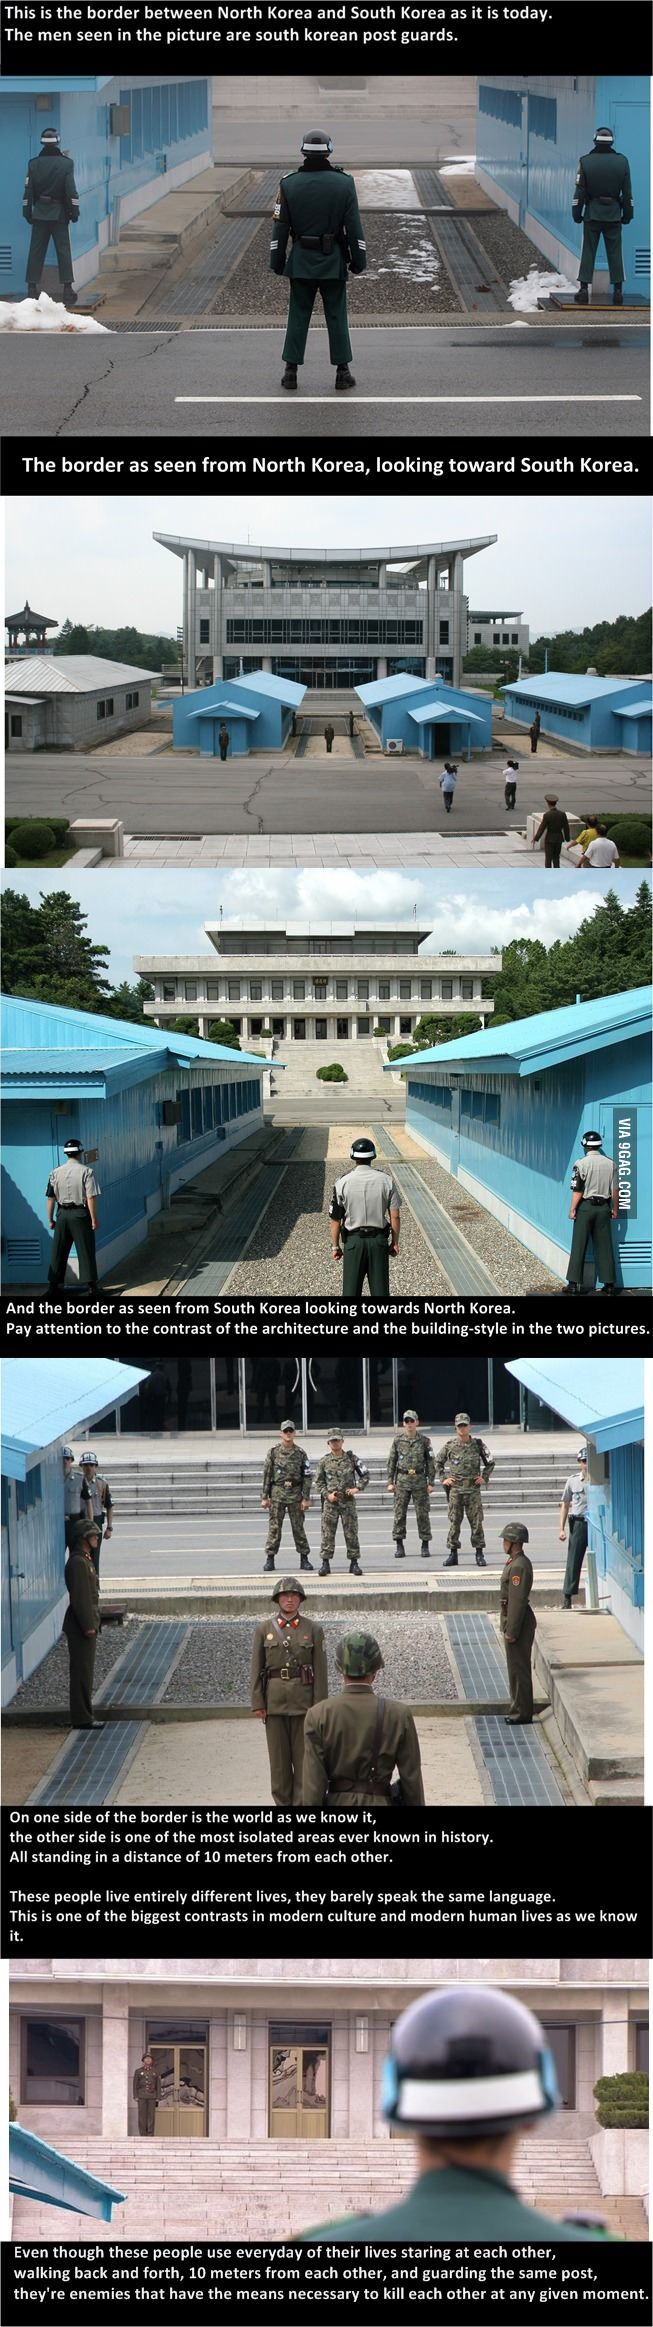 North Korea and South Korea's border, their contrasts, and their lives